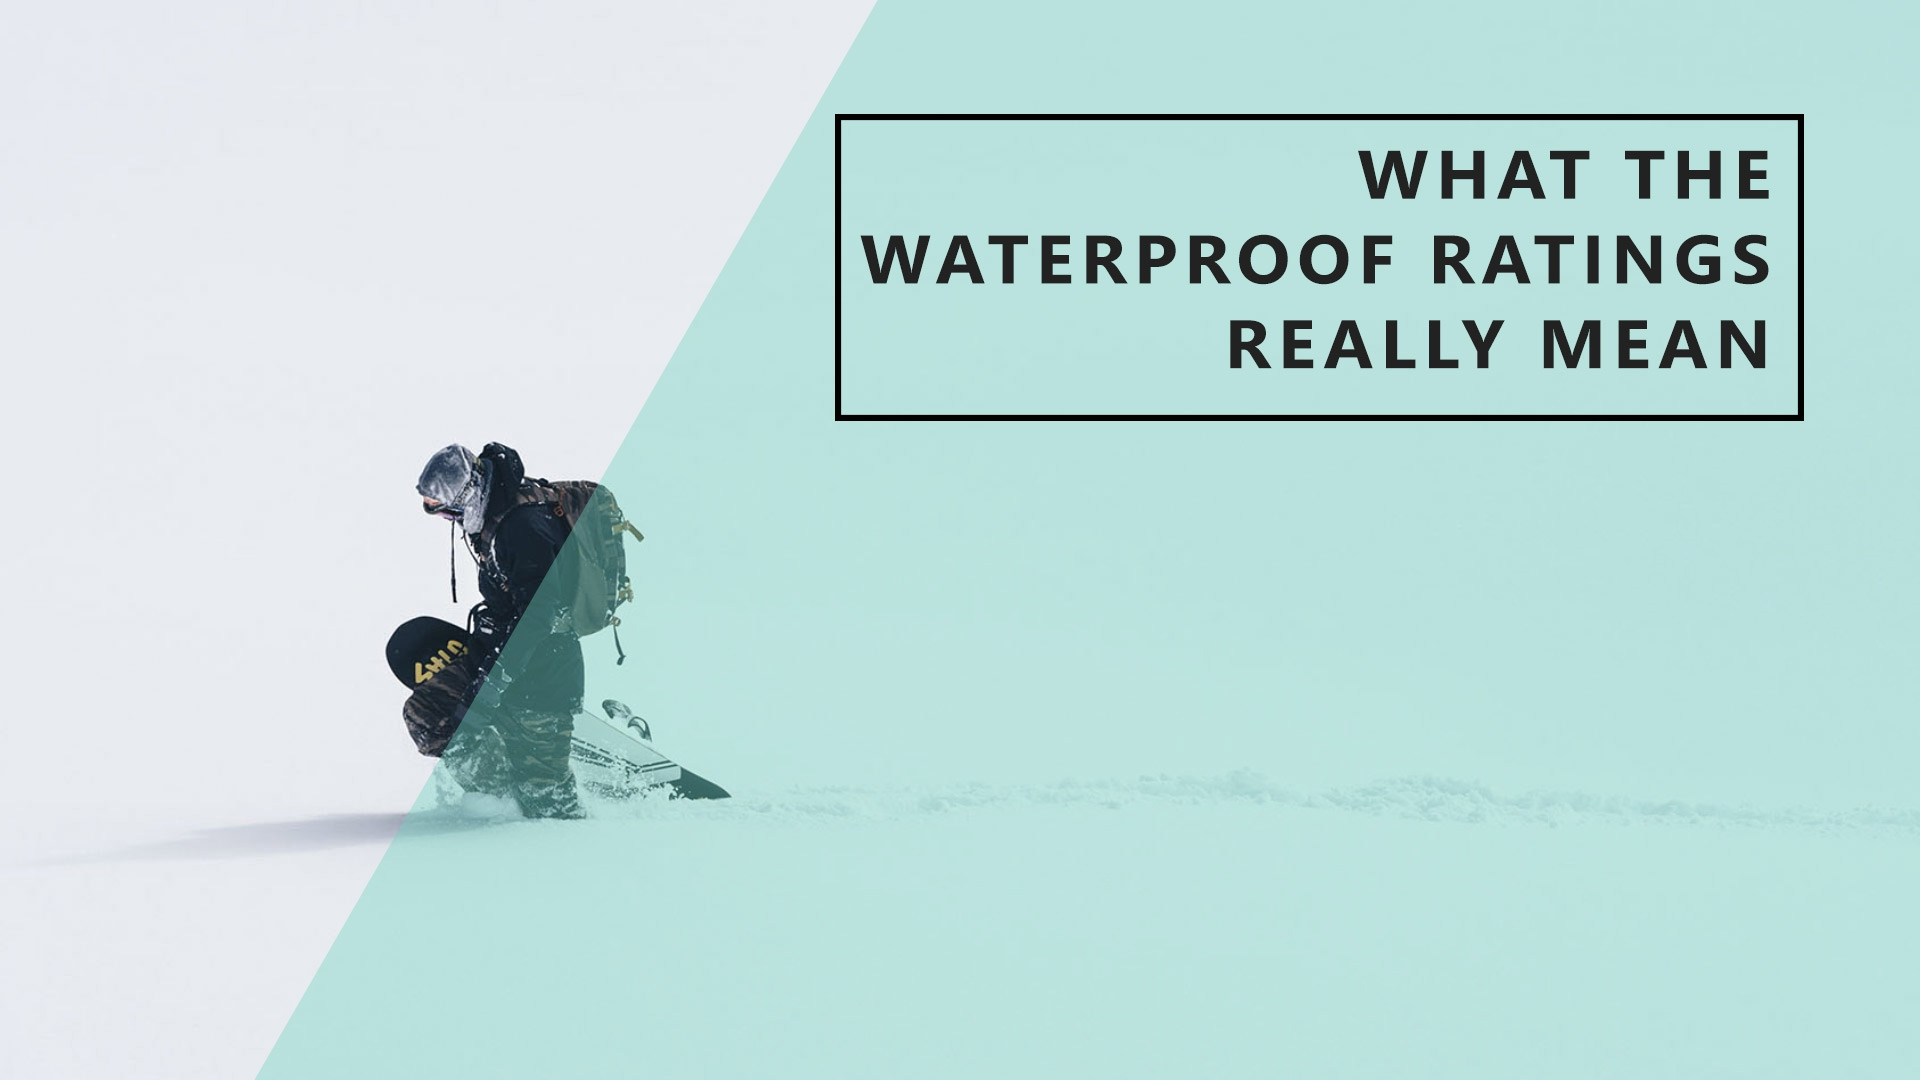 What Waterproof Ratings Really Mean